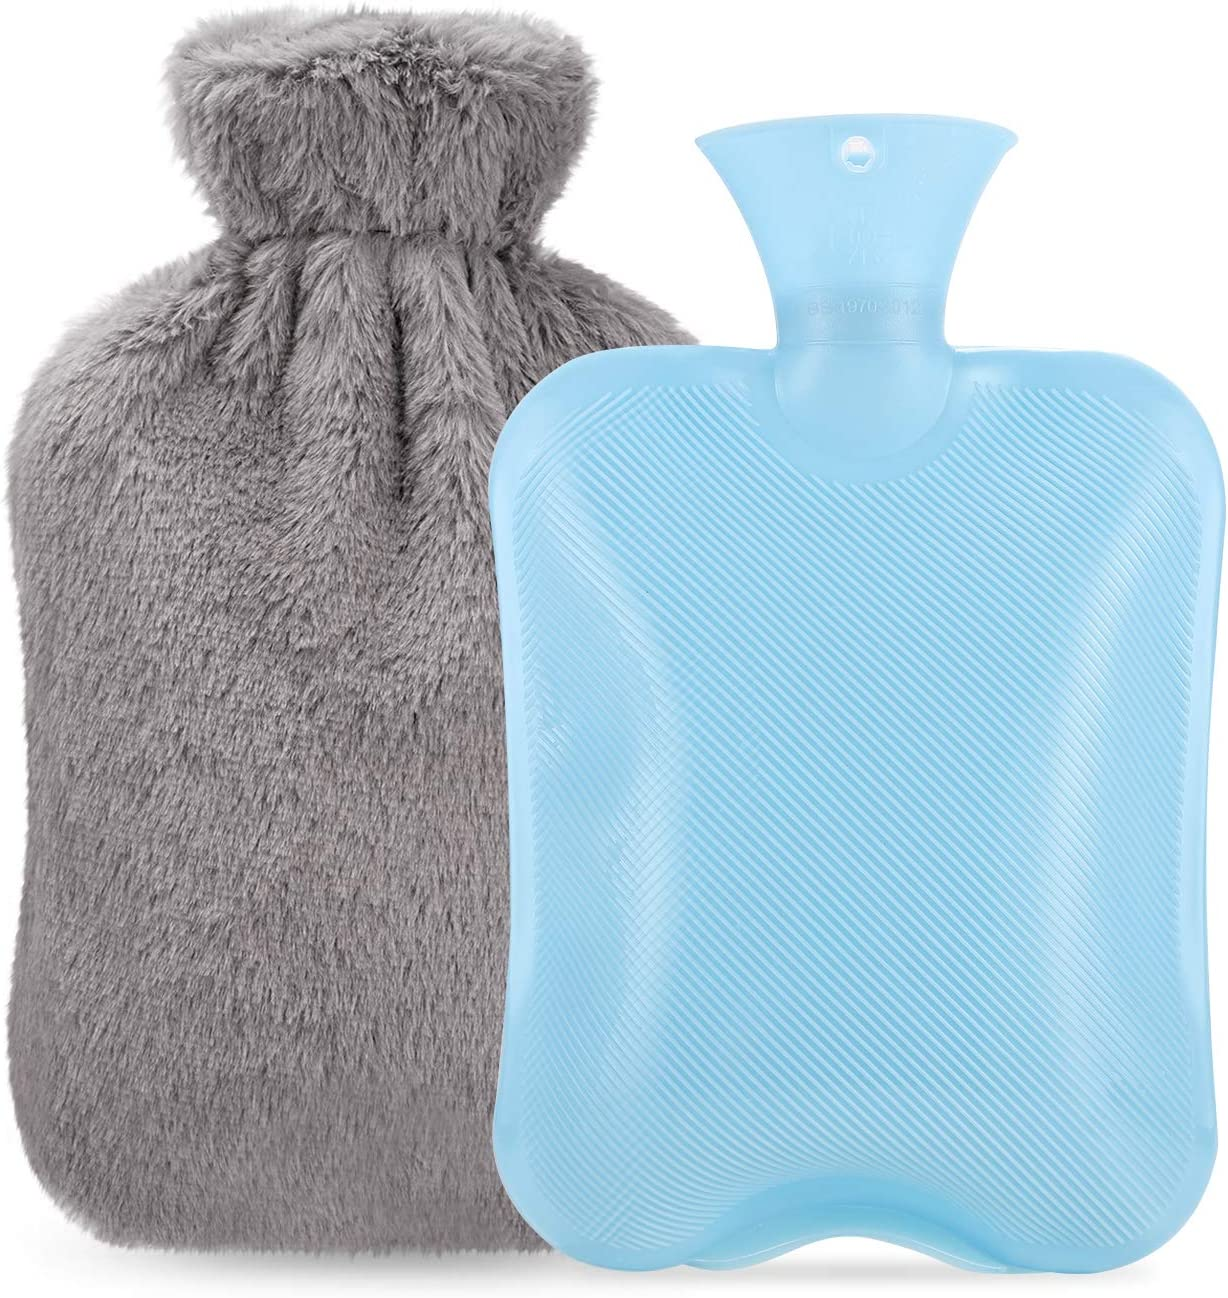 Hot Therapy for Hand Foot Body Warm Keeping and Pain Relief Winload 2L Hot Water Bottle with Cover Cosy Fluffy Faux Fur Hot Water Bag Leakproof